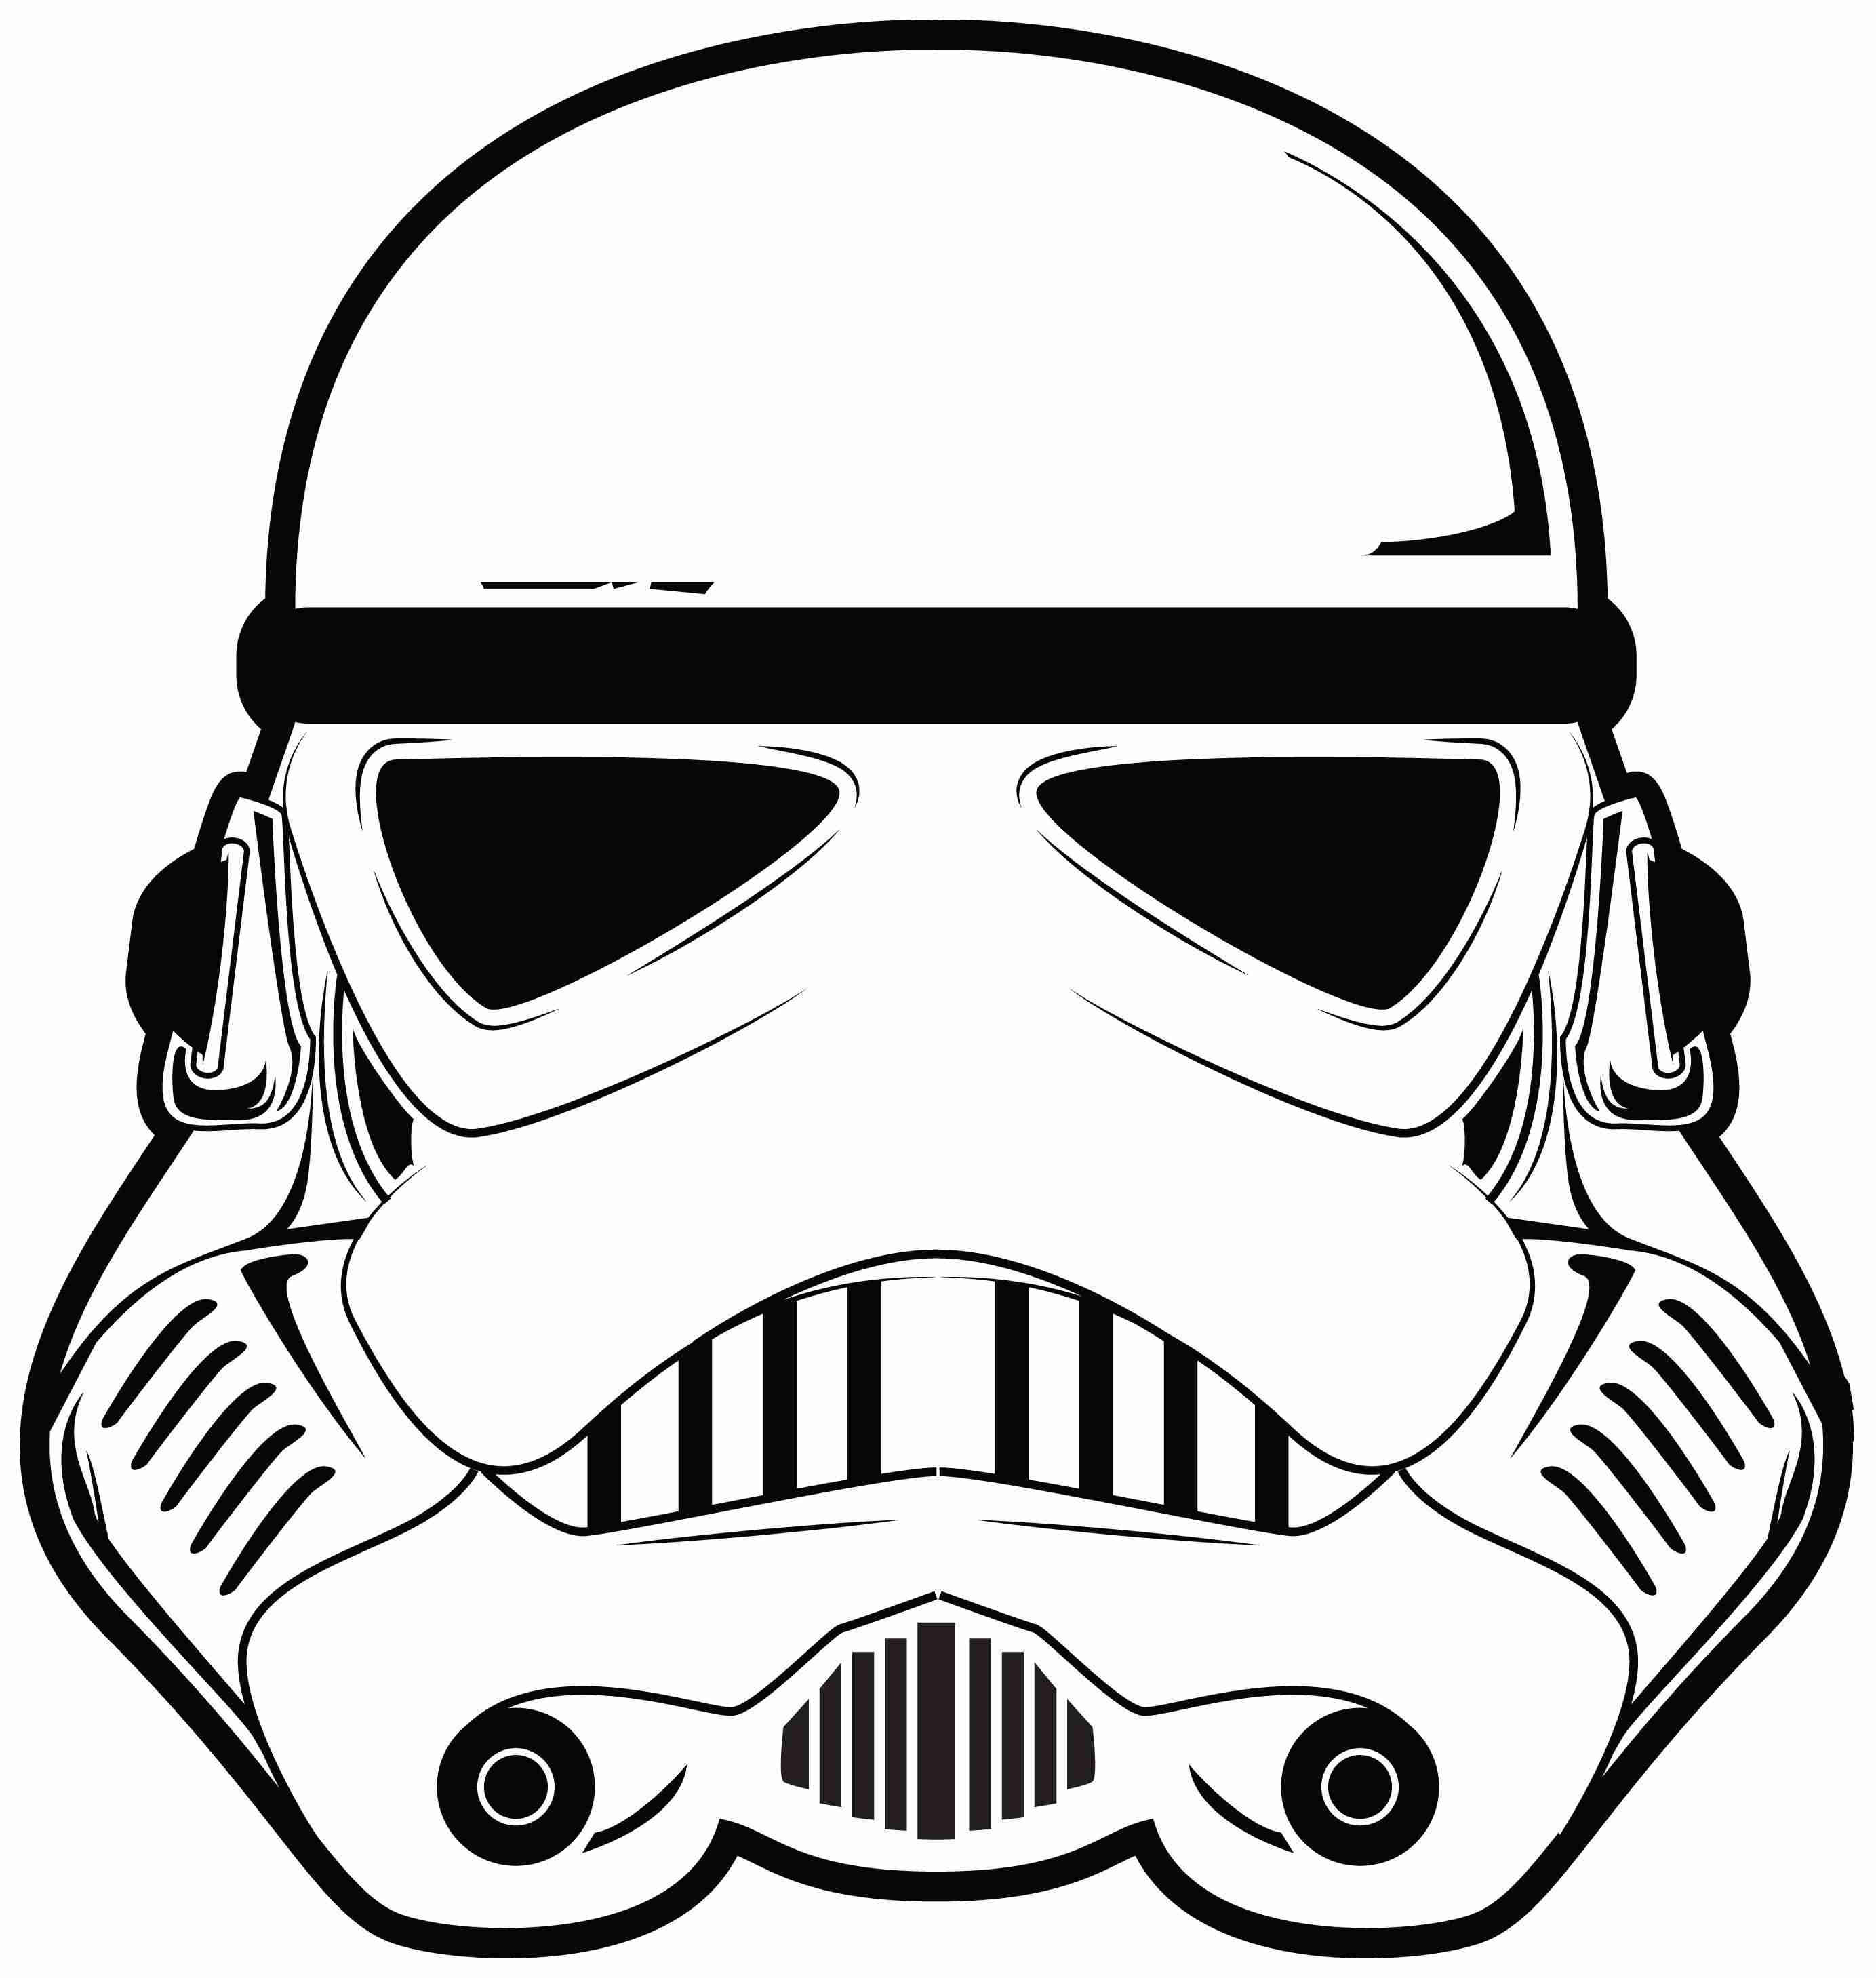 star wars characters drawings starwars clipart starwars transparent free for download characters drawings wars star